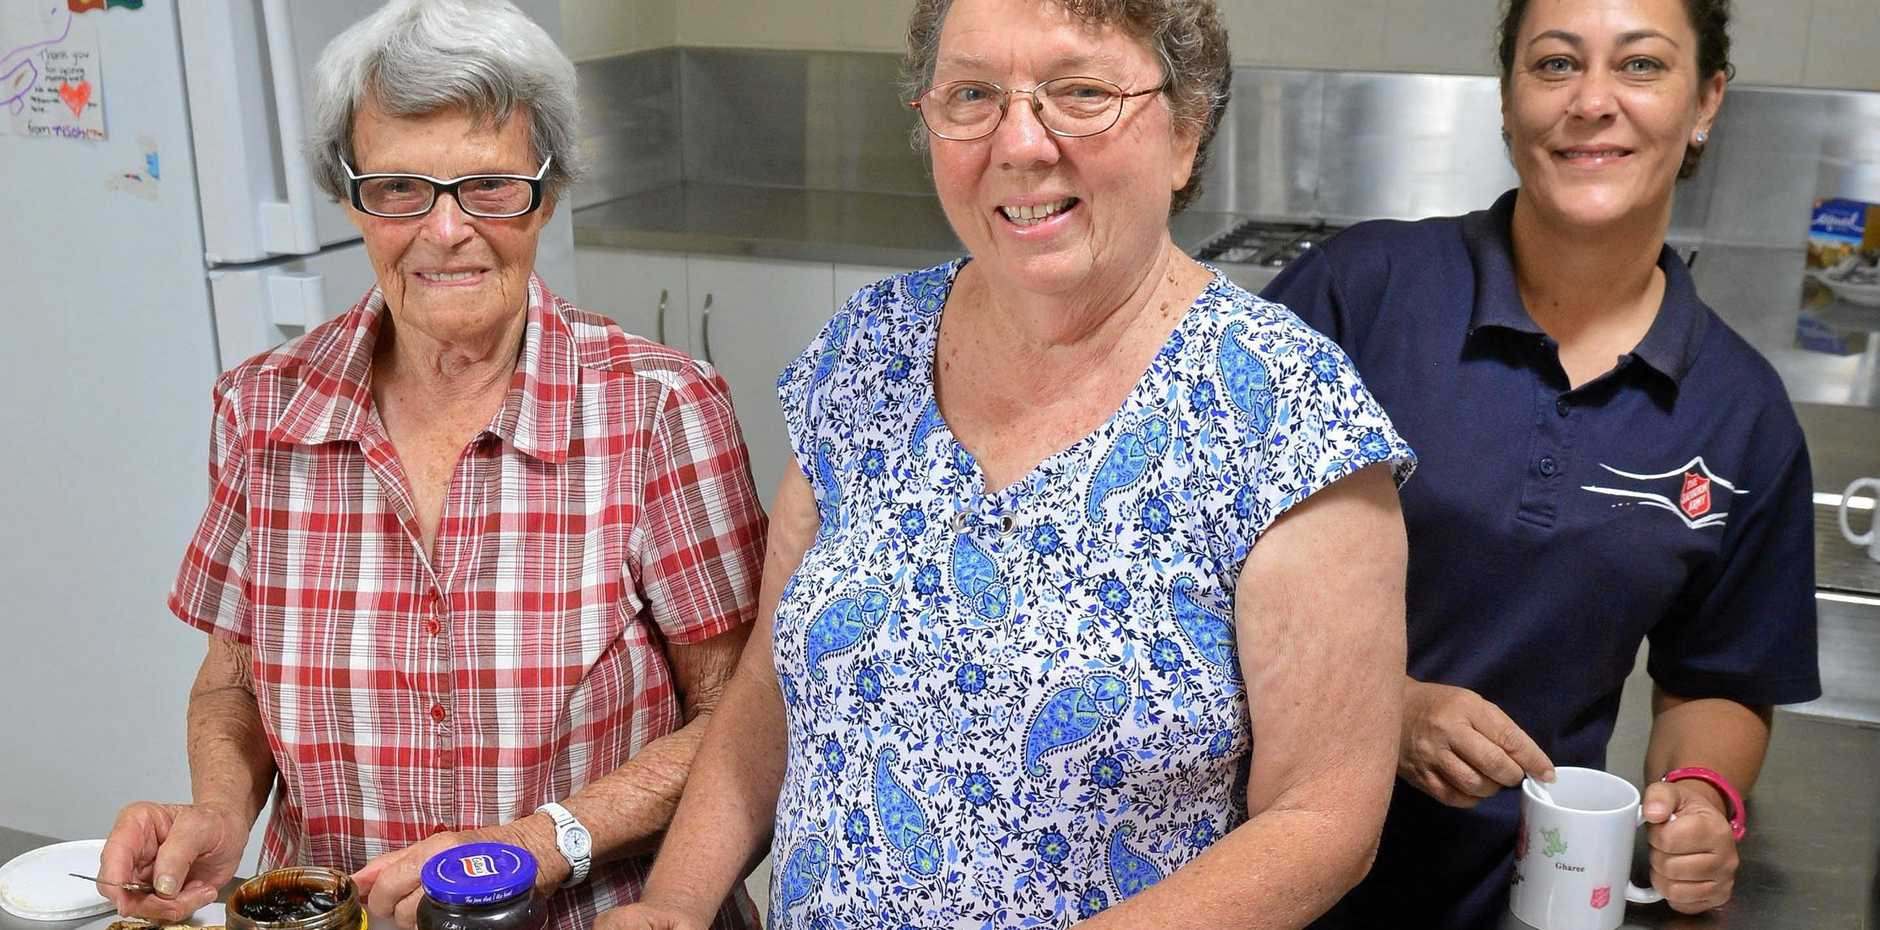 COMMUNITY SPIRIT: Dot Brown, Ruth Alback and Jacqui Stringer at the Red Cafe in Ipswich.